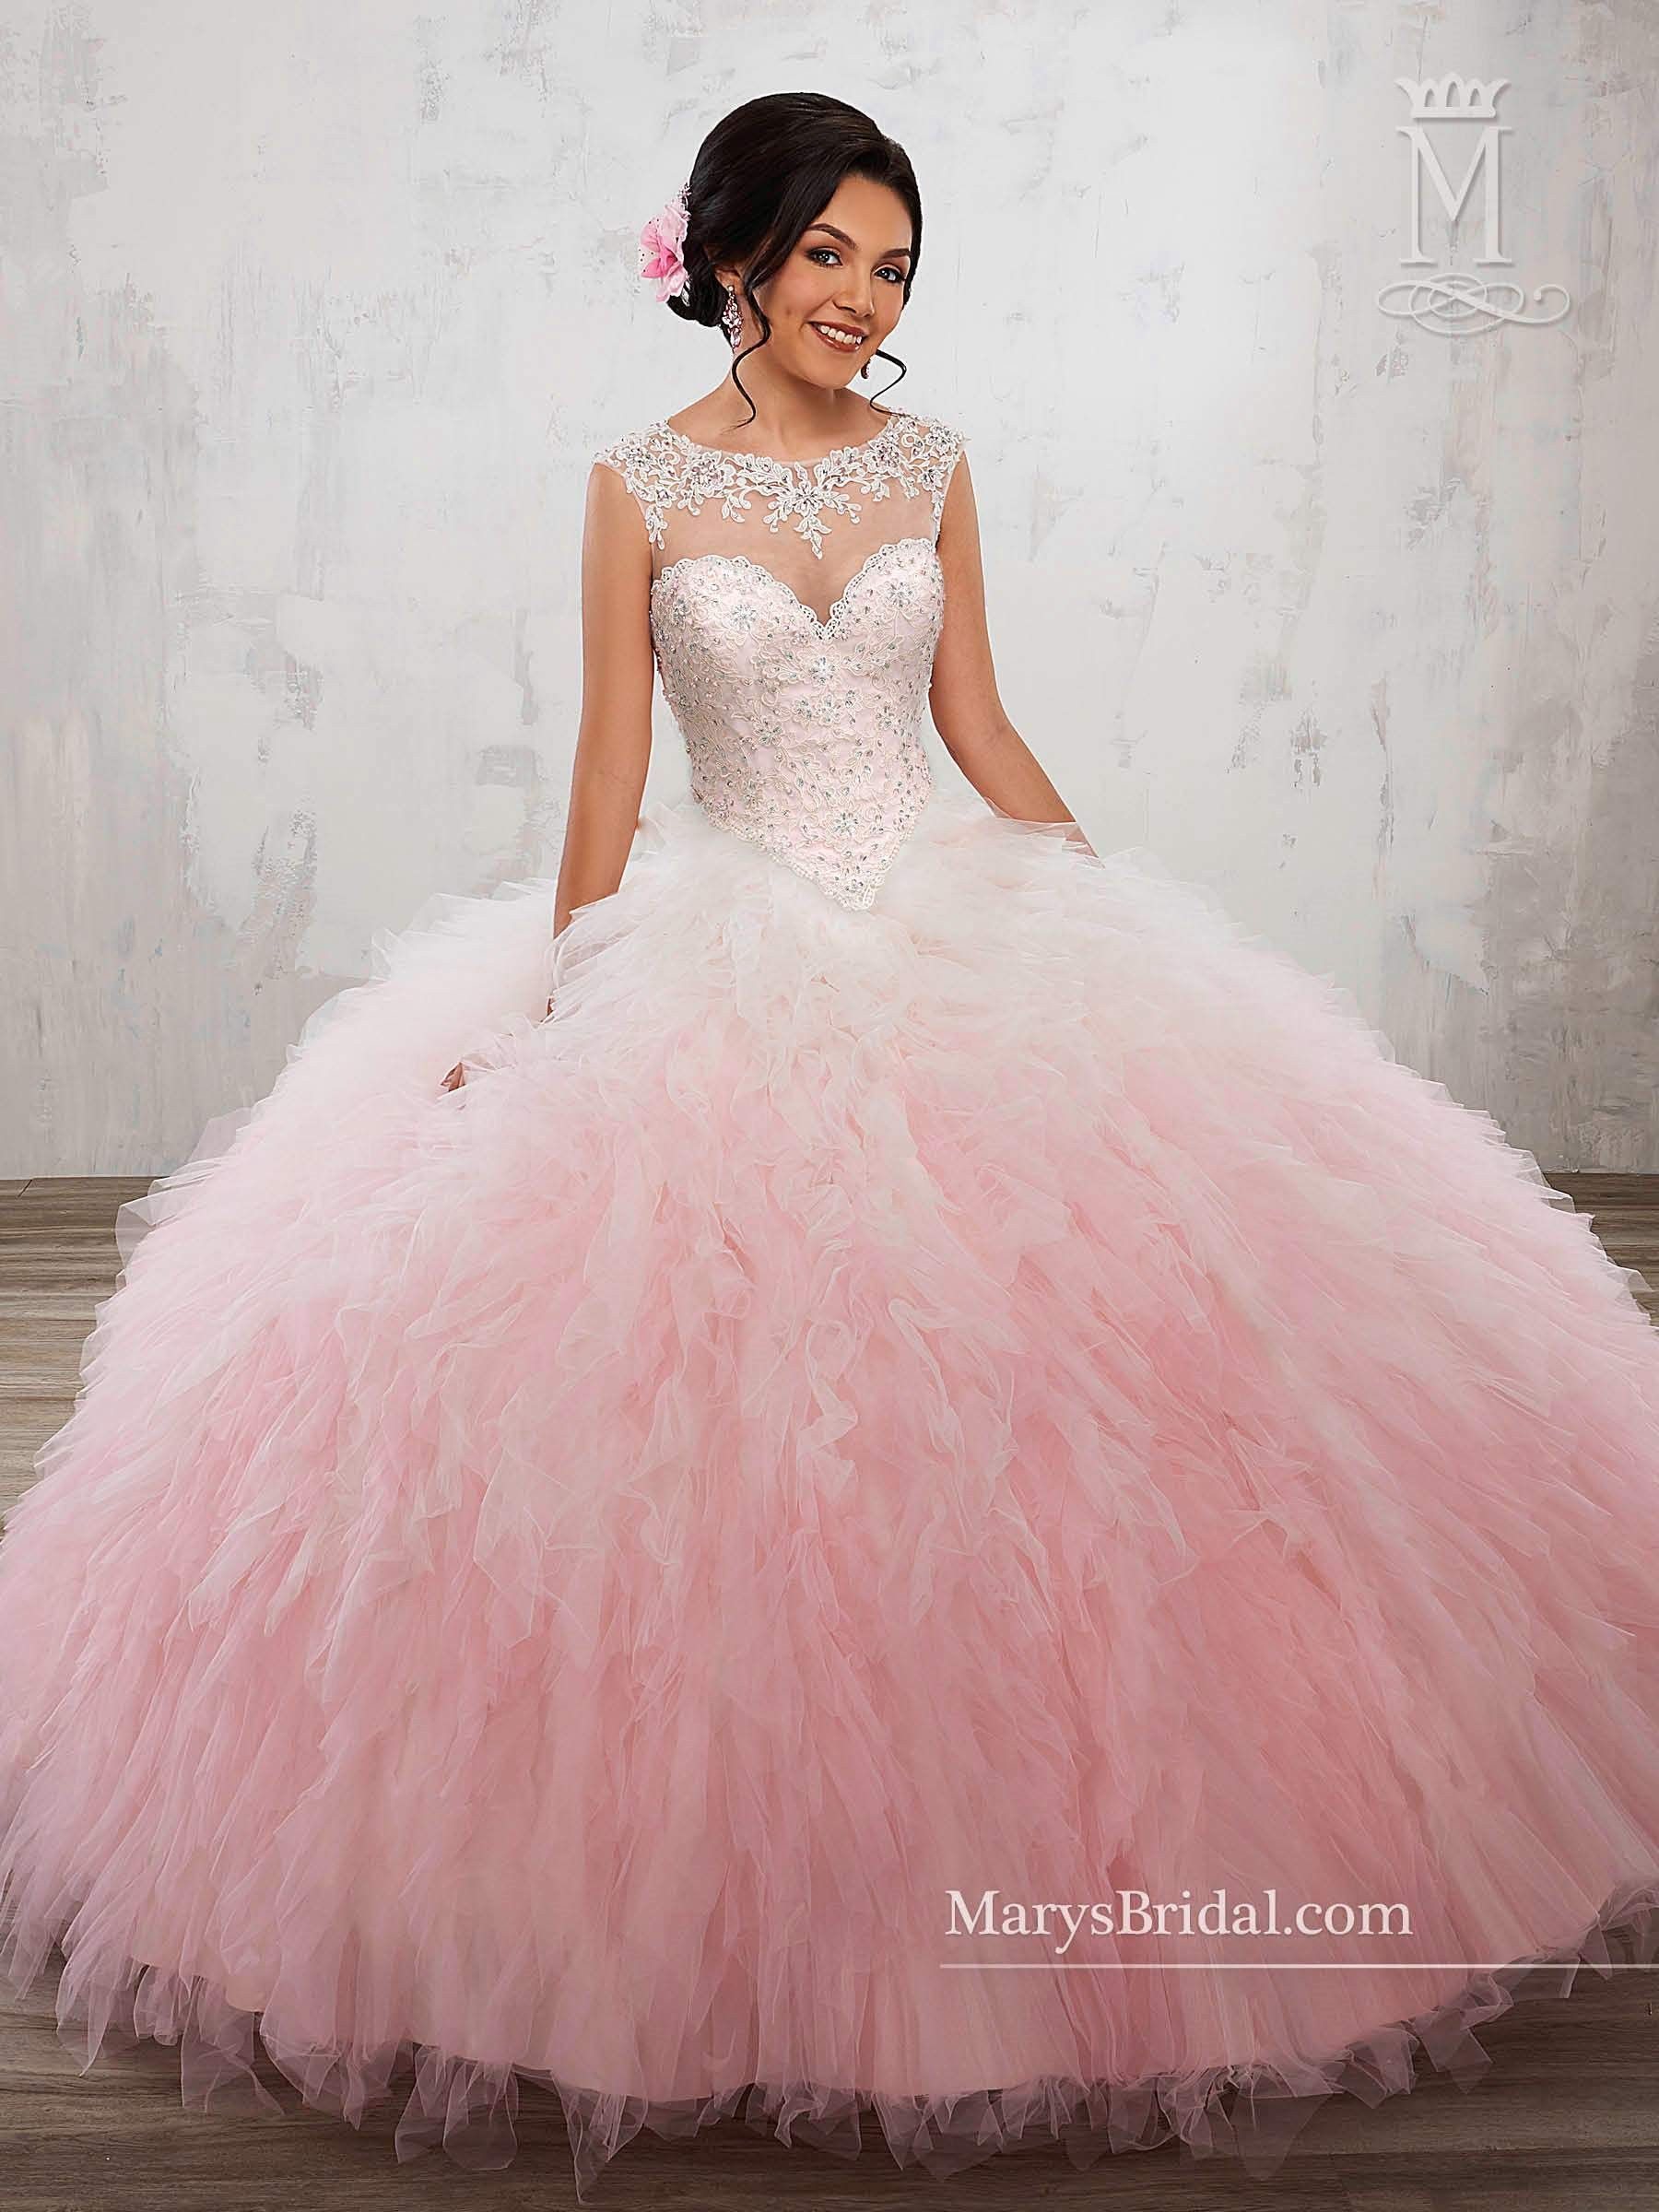 Ombre 2 Piece Quinceanera Dress by Mary\'s Bridal Princess 4Q508 ...